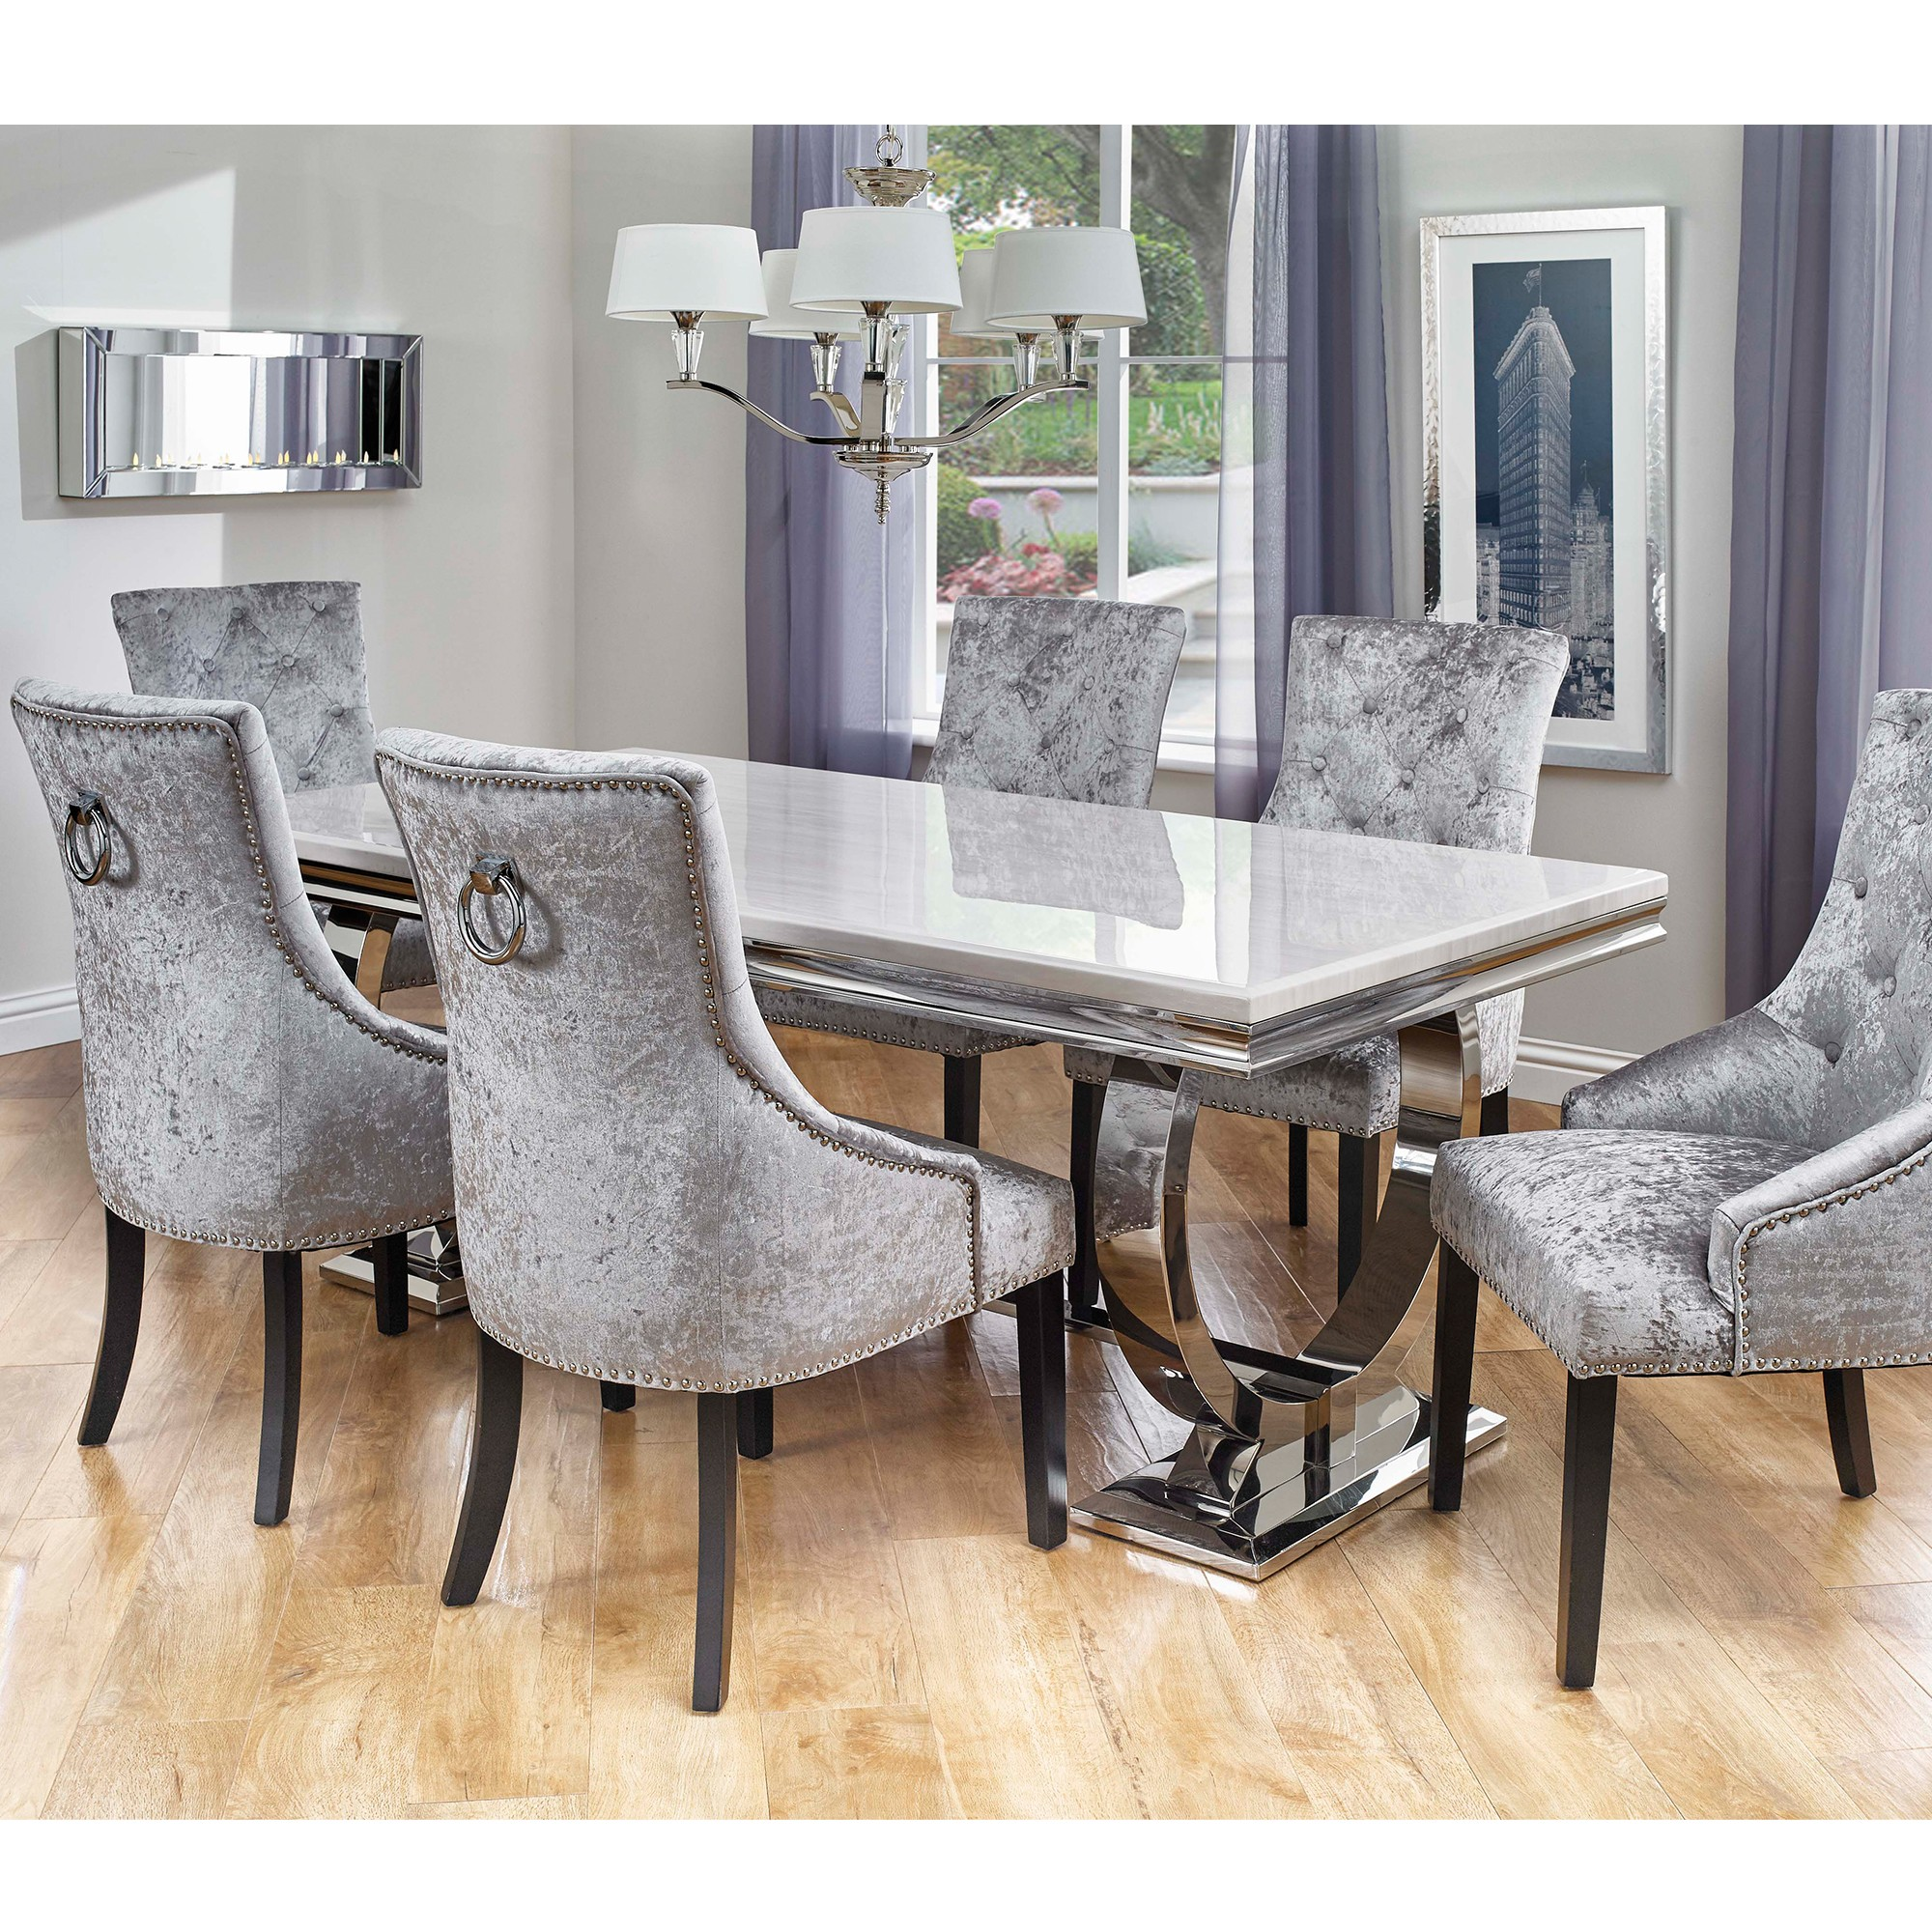 dining table cooks collection valentina dining table and 6 chairs LTDXOMX